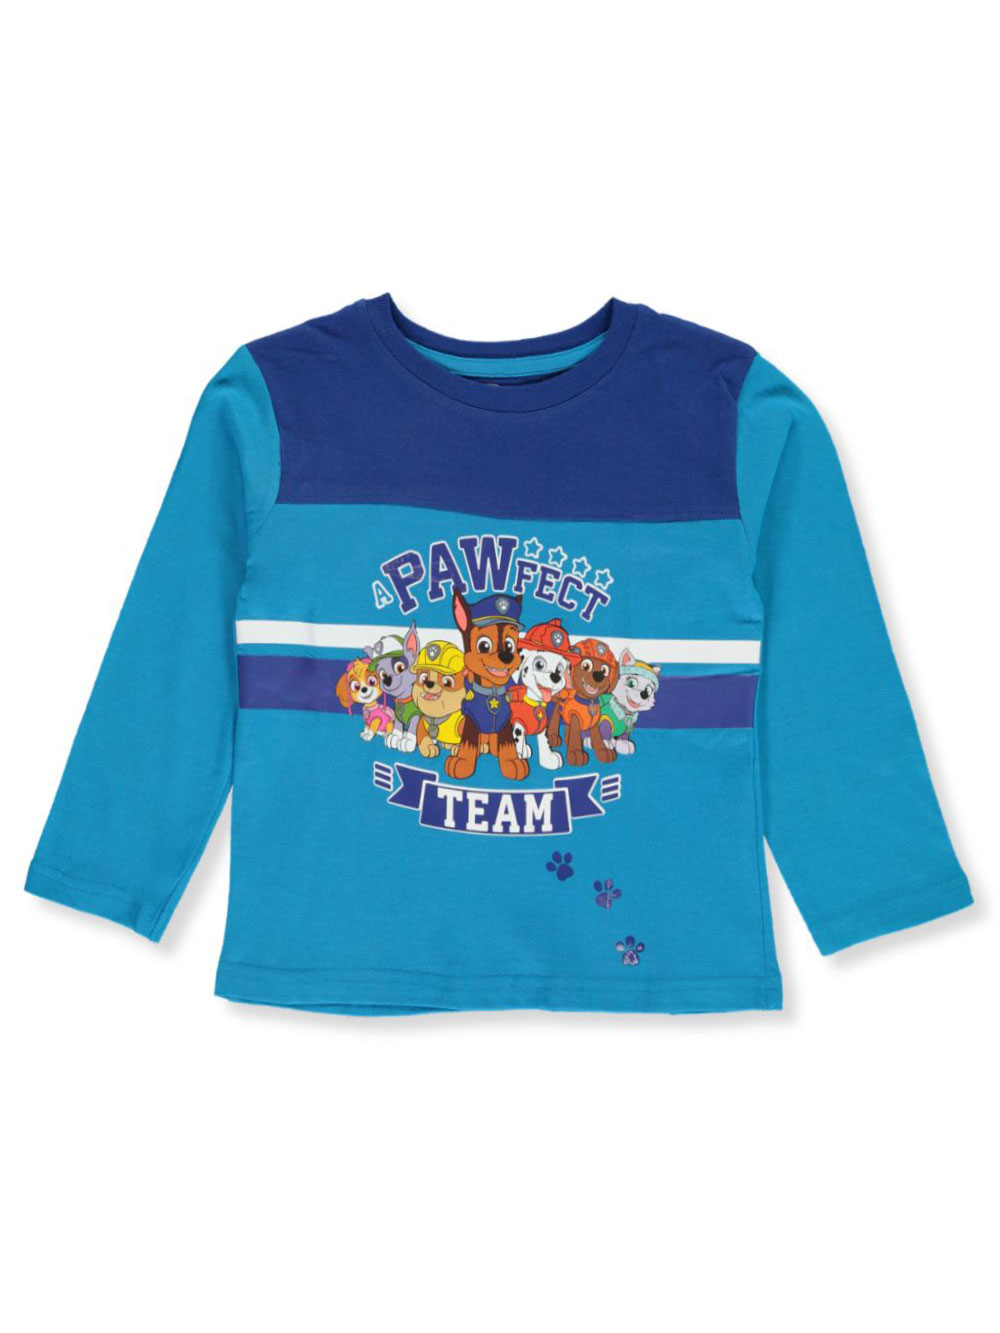 PAW PATROL SHIRT AND SHORTS~SIZE 12 MONTHS~PAWFECT TEAM~NEW W//TAG